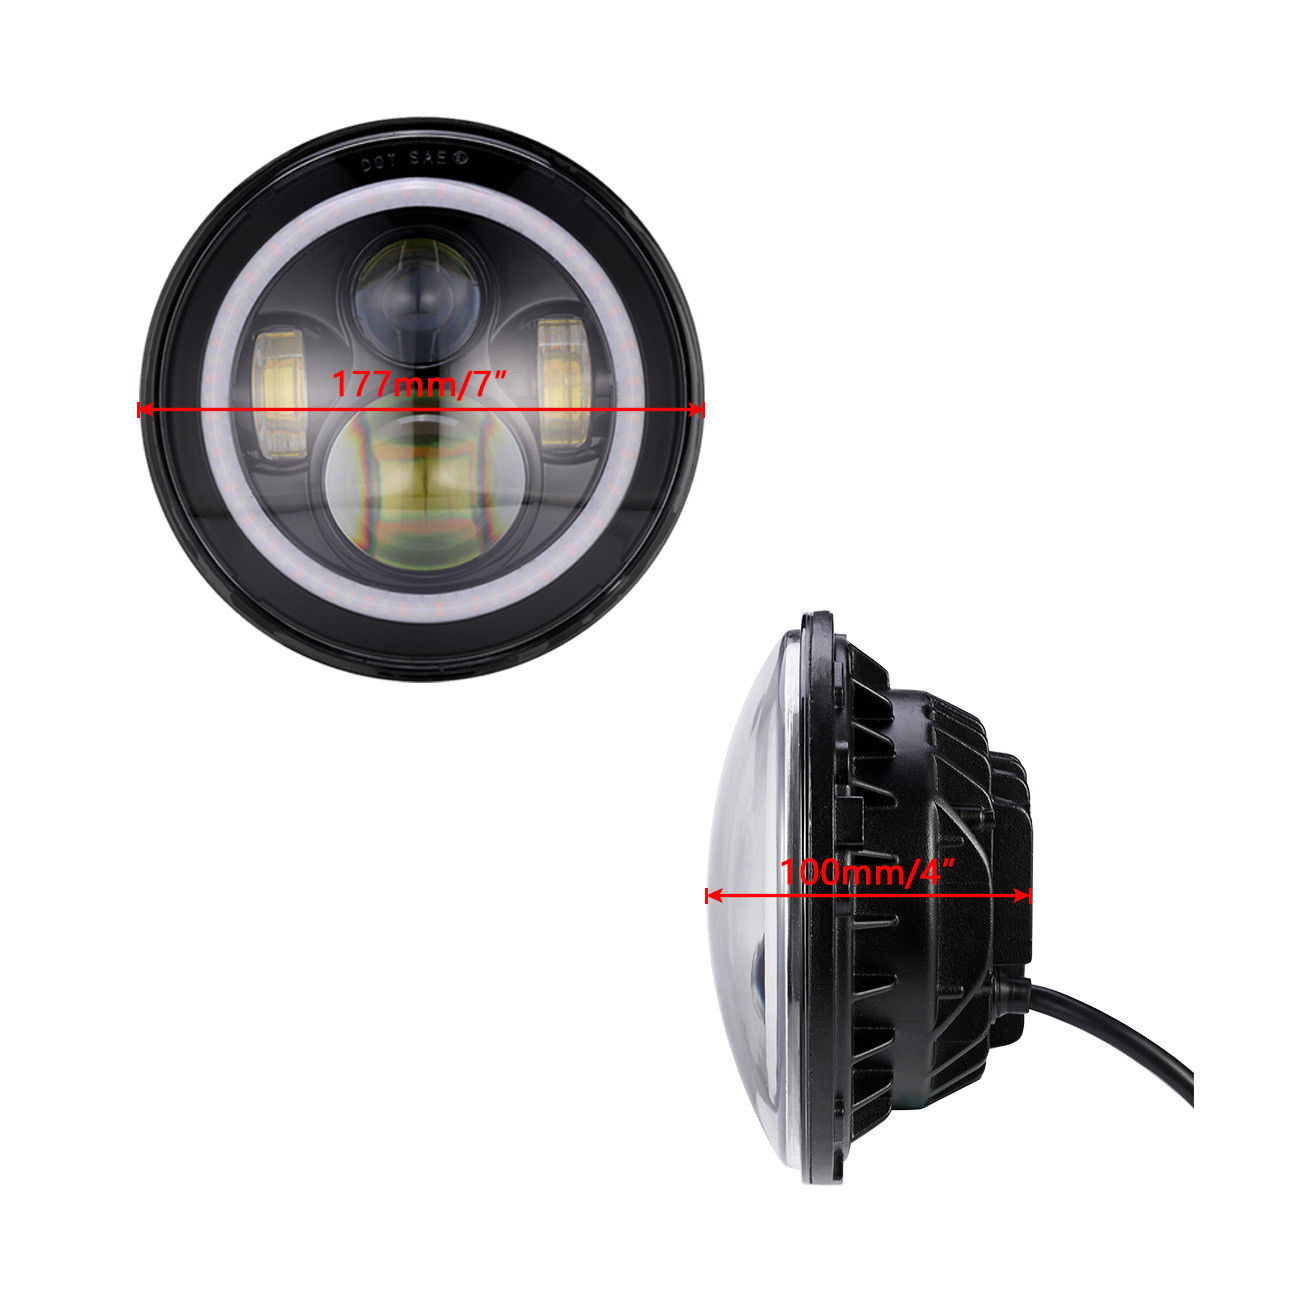 Cree 7 Inch Led Headlight Halo Angle Eye For 97 18 Jeep Wrangler Jk Cj7 Clock Wiring Lj Tj Cj Drl